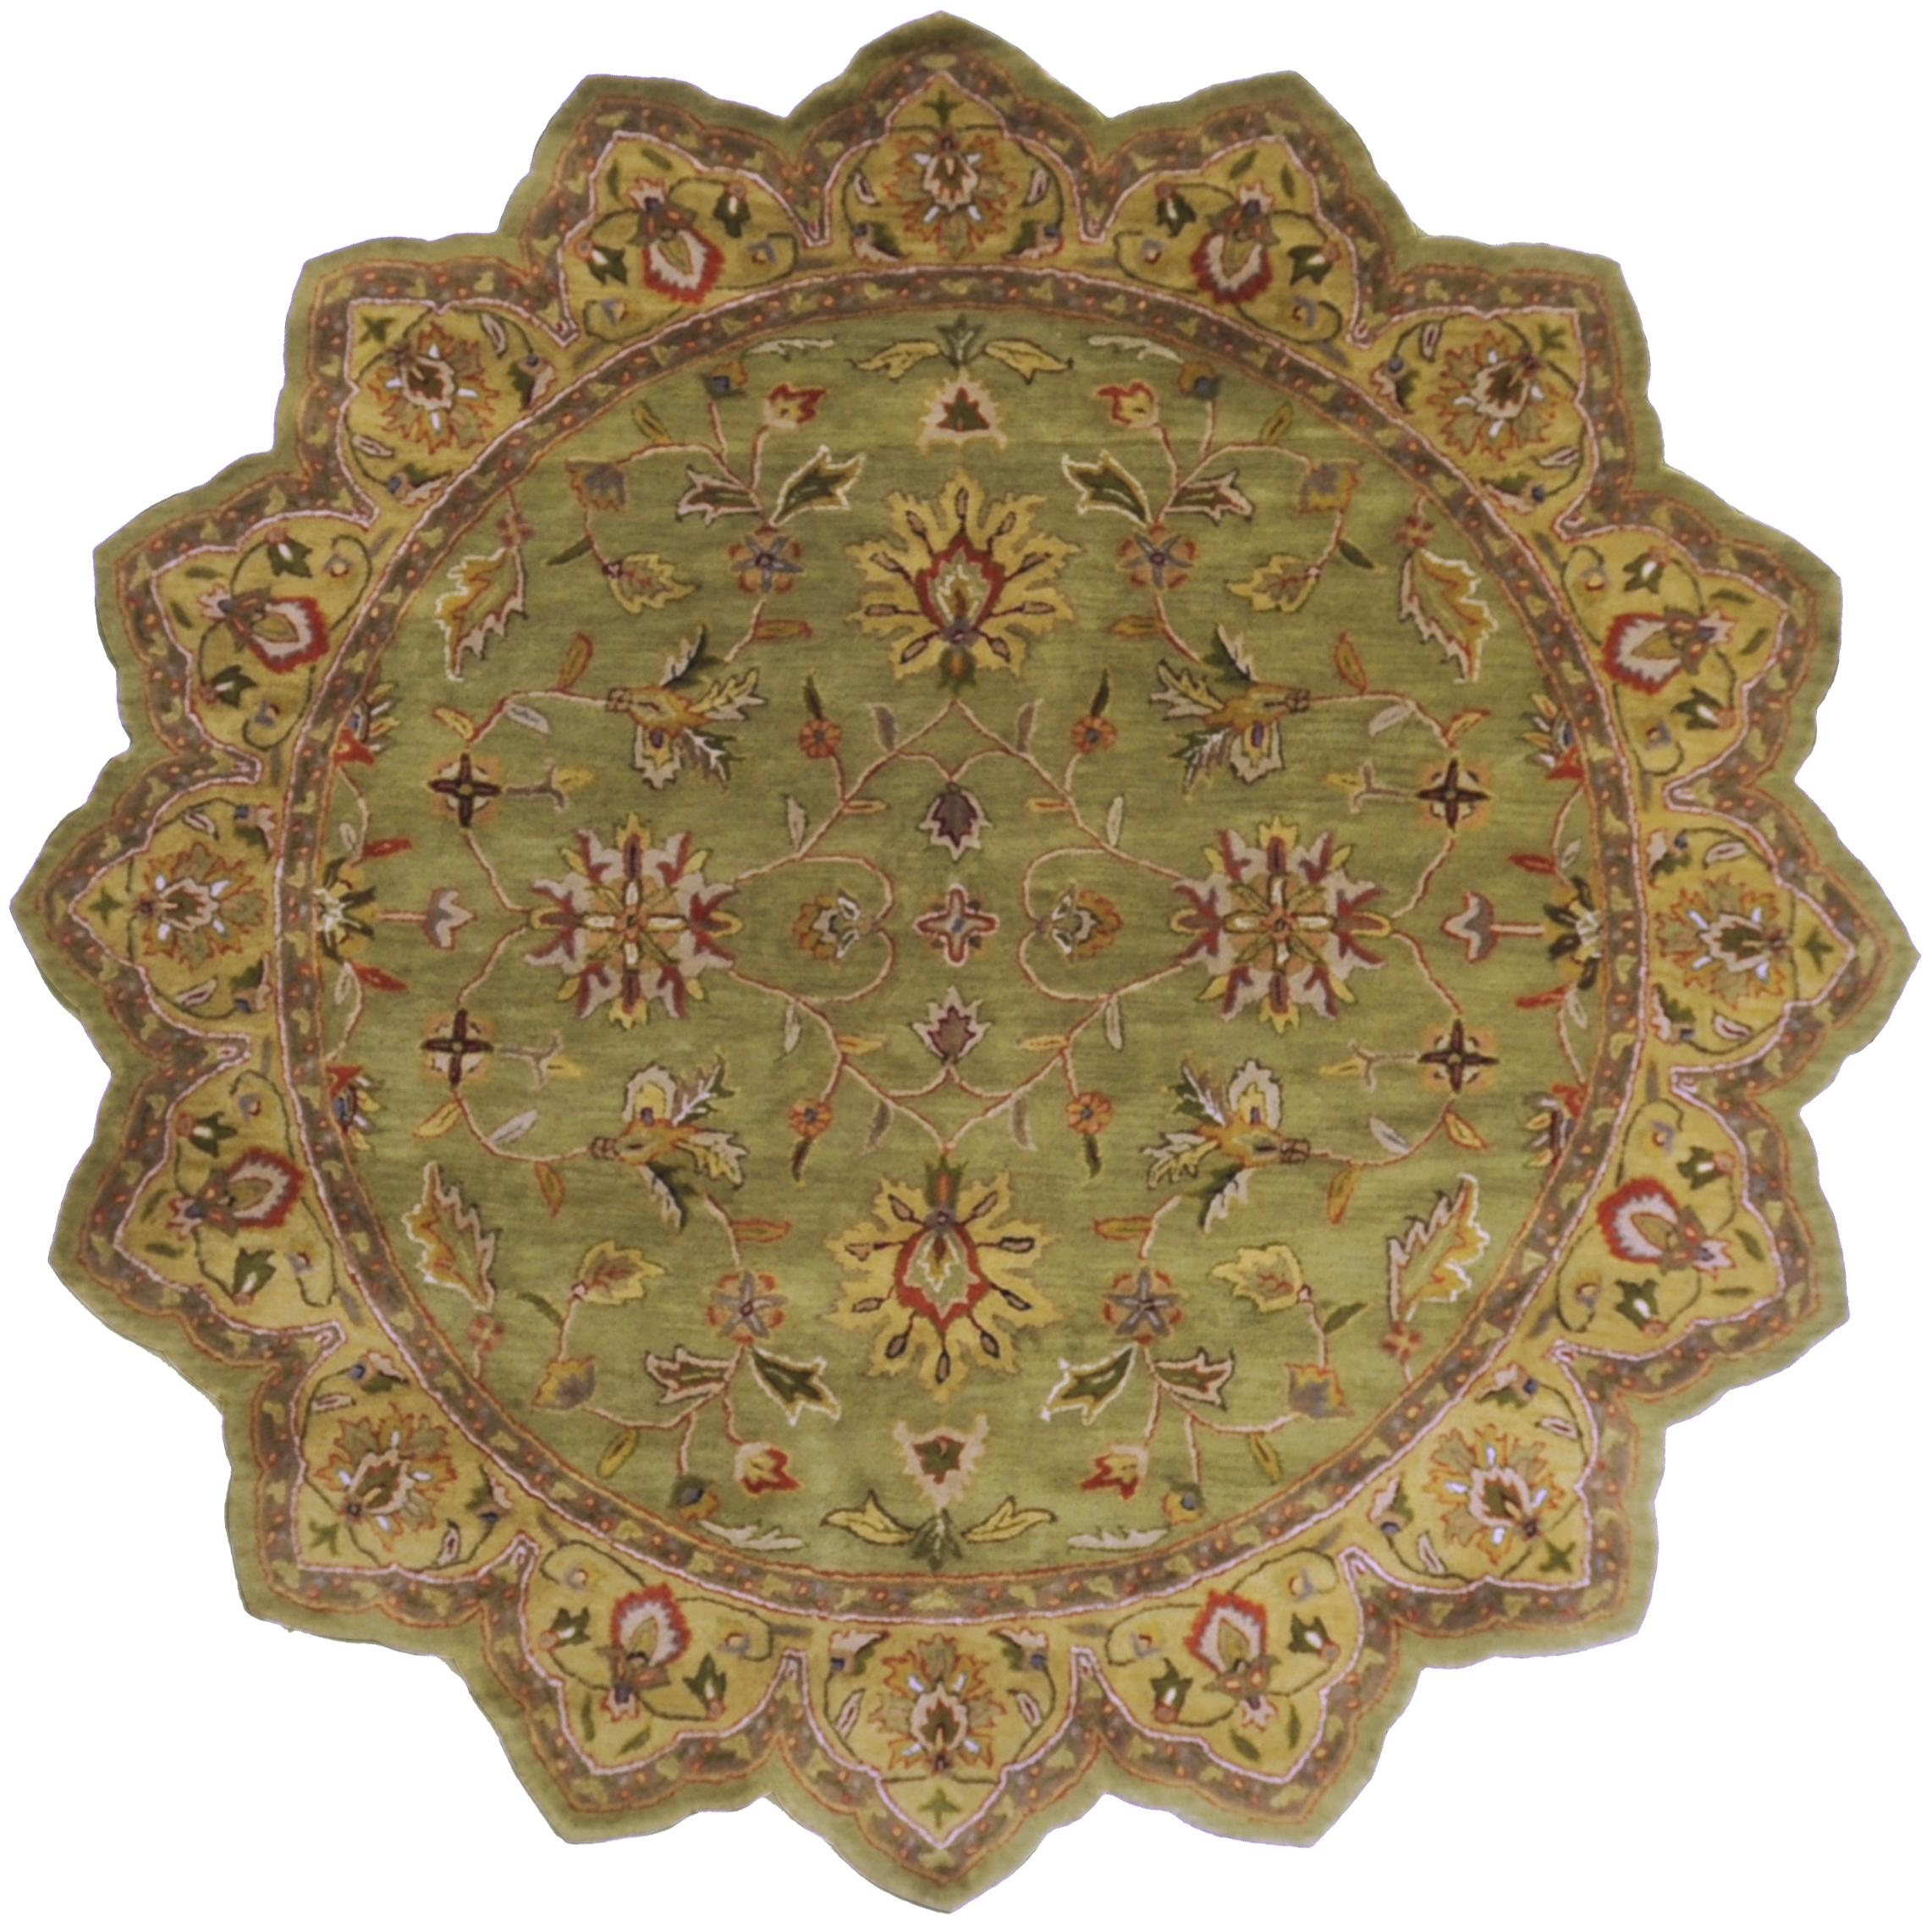 Surya Rugs Crowne 8' Star - Item Number: CRN6001-8STAR